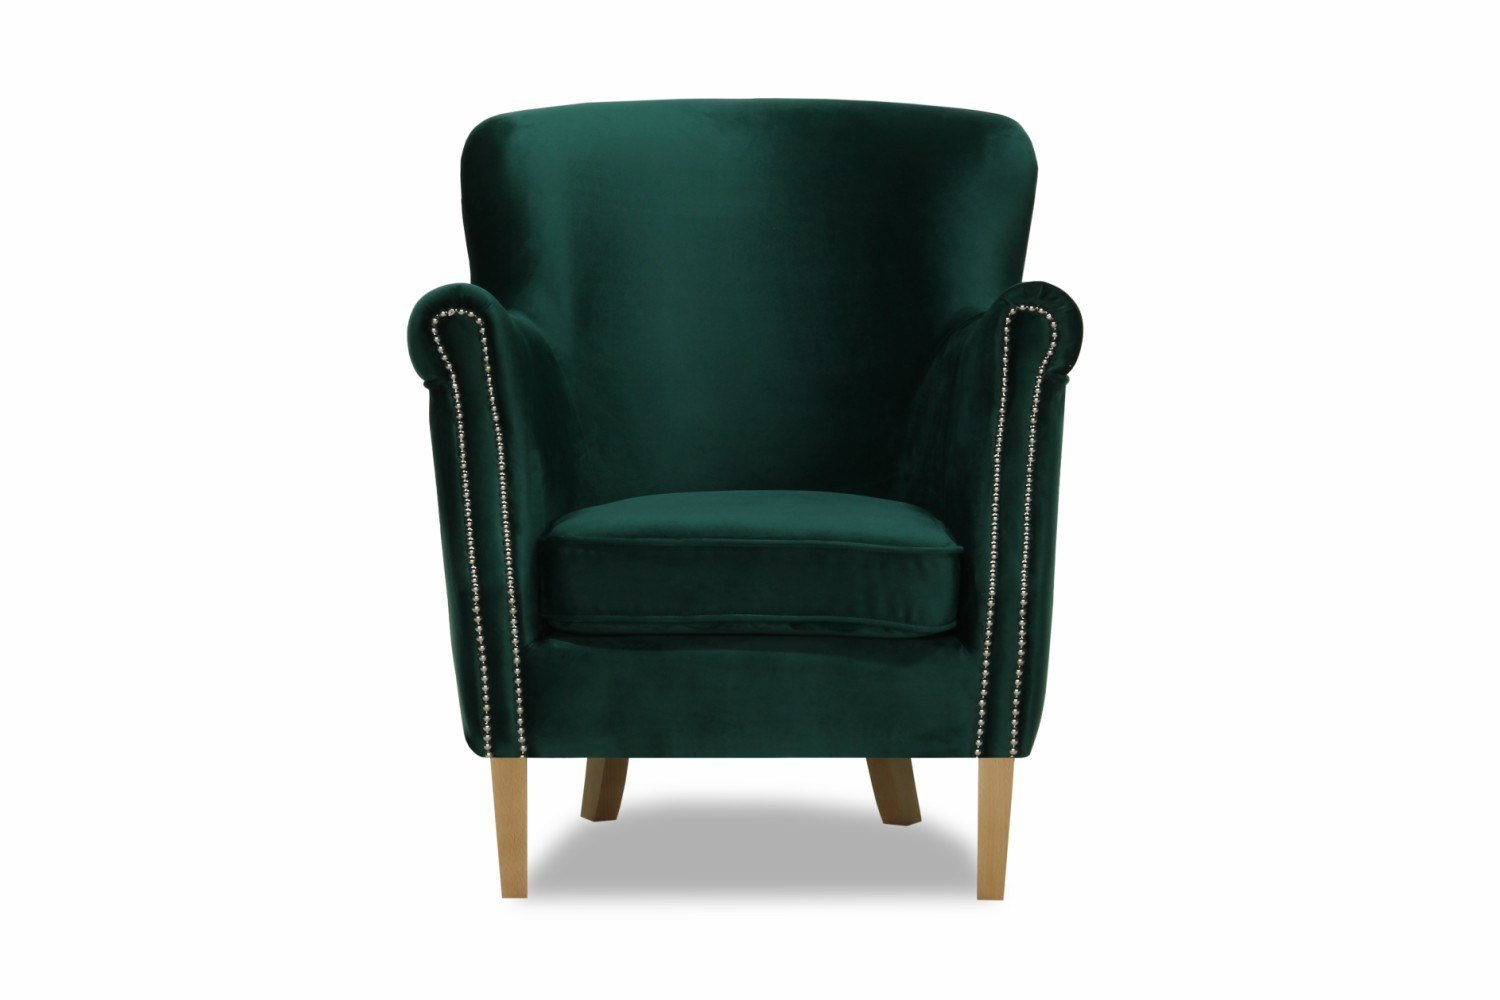 Best Lincoln Bedroom Chair Arm Velvet Green Ireland With Pictures